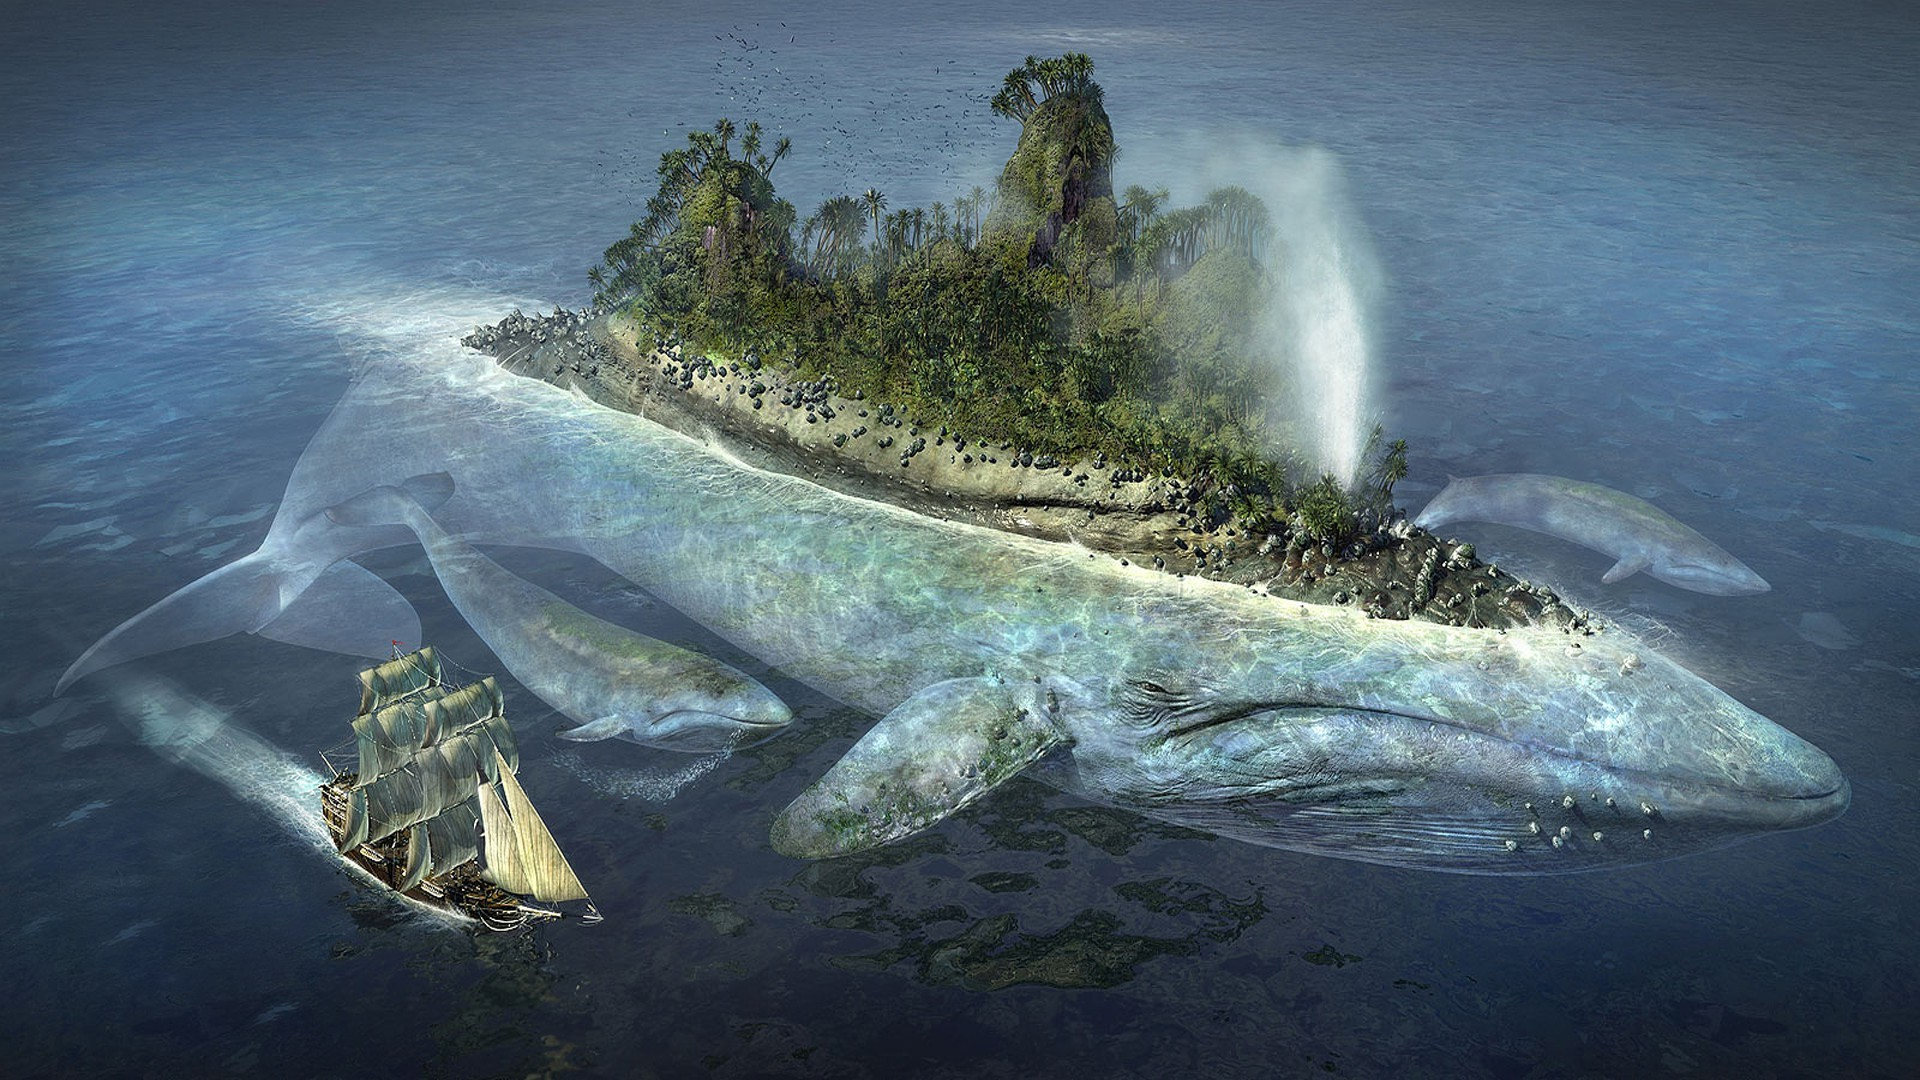 Creature 3d Movie Wallpaper Download Whale Island Ship Sea Fantasy Art Water Wallpapers Hd